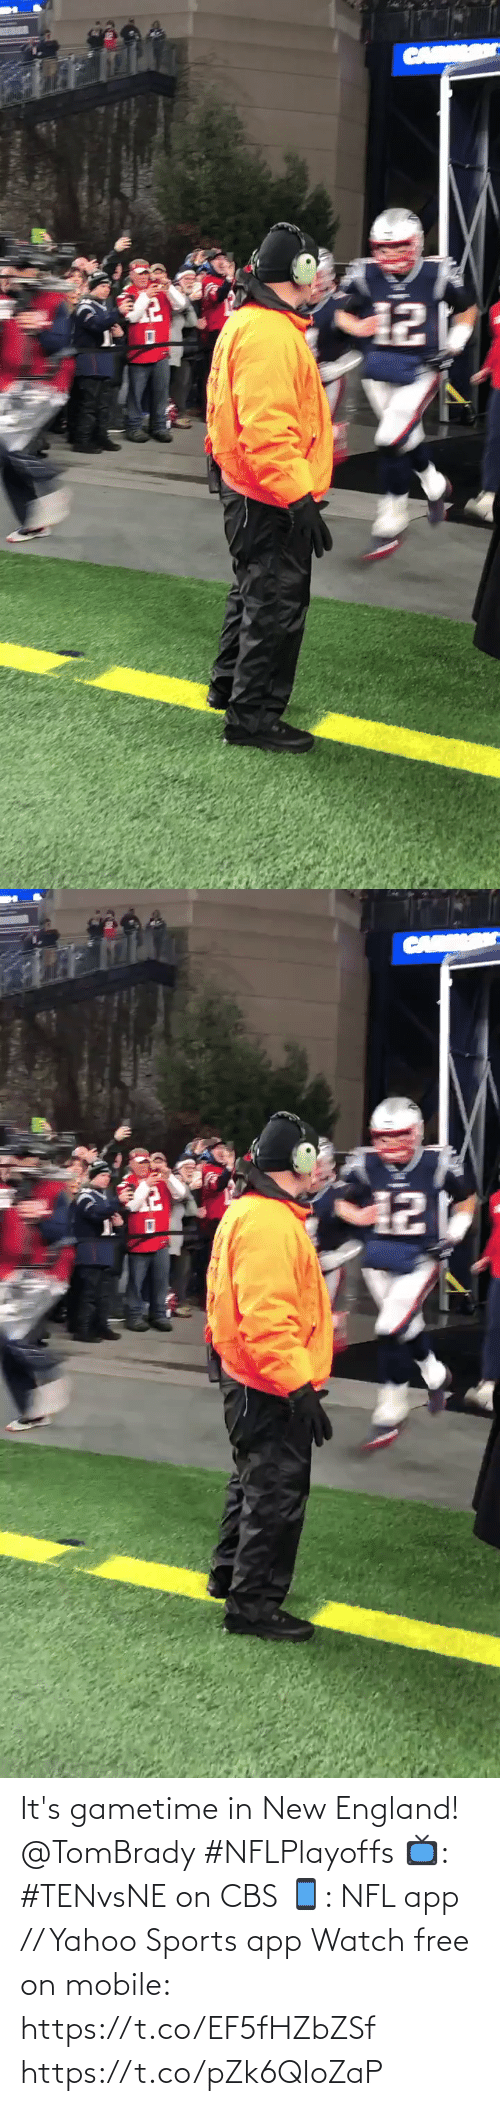 England: CAR   CARK It's gametime in New England! @TomBrady #NFLPlayoffs  📺: #TENvsNE on CBS 📱: NFL app // Yahoo Sports app Watch free on mobile: https://t.co/EF5fHZbZSf https://t.co/pZk6QIoZaP